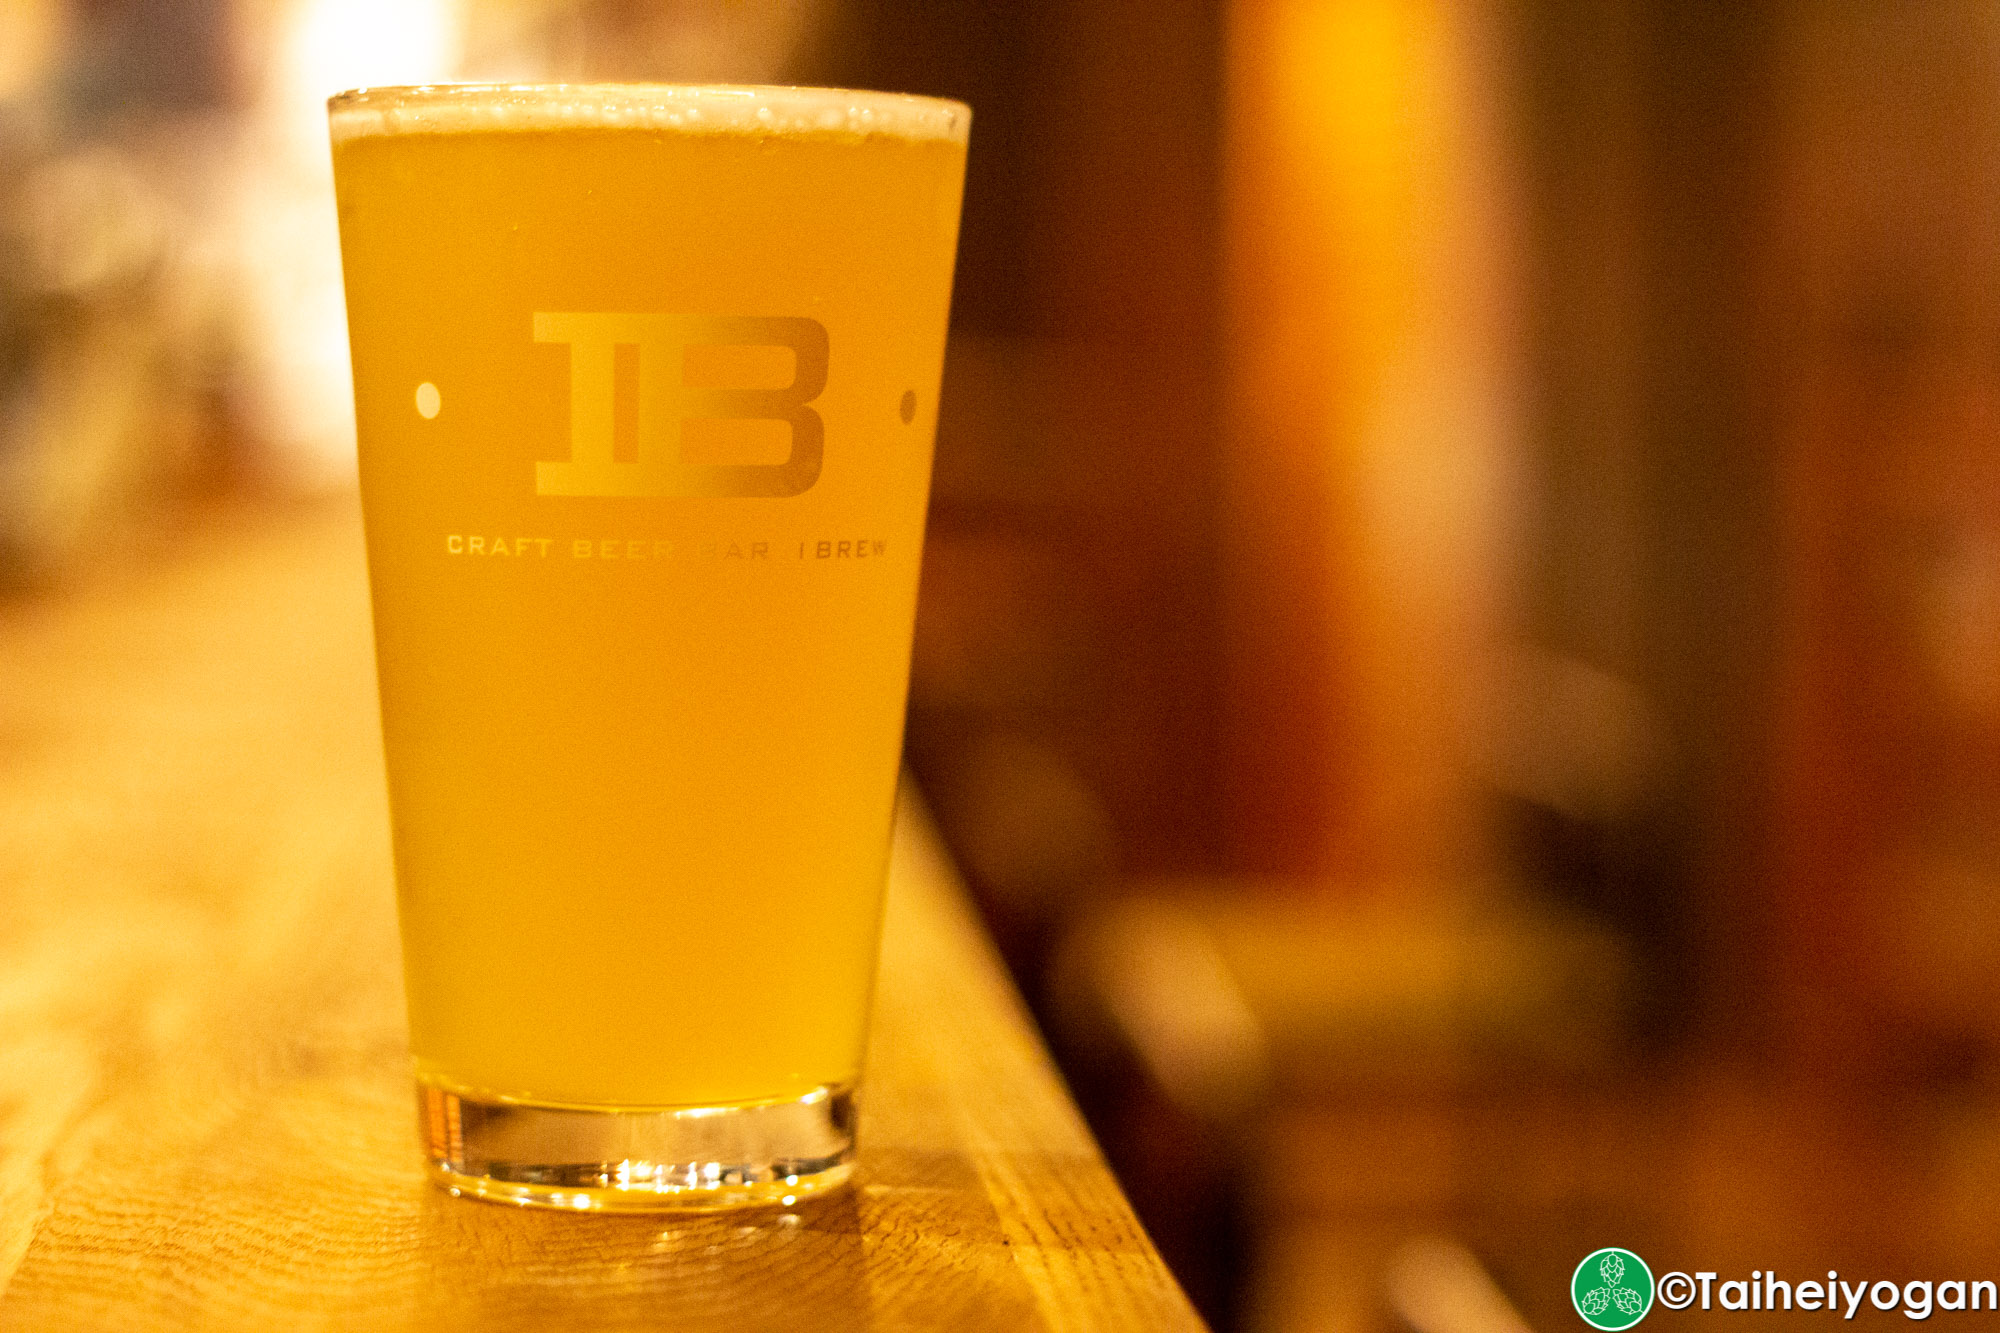 Craft Beer Bar Ibrew (恵比寿駅前店・Ebisu Ekimae) - Menu - Craft Beer